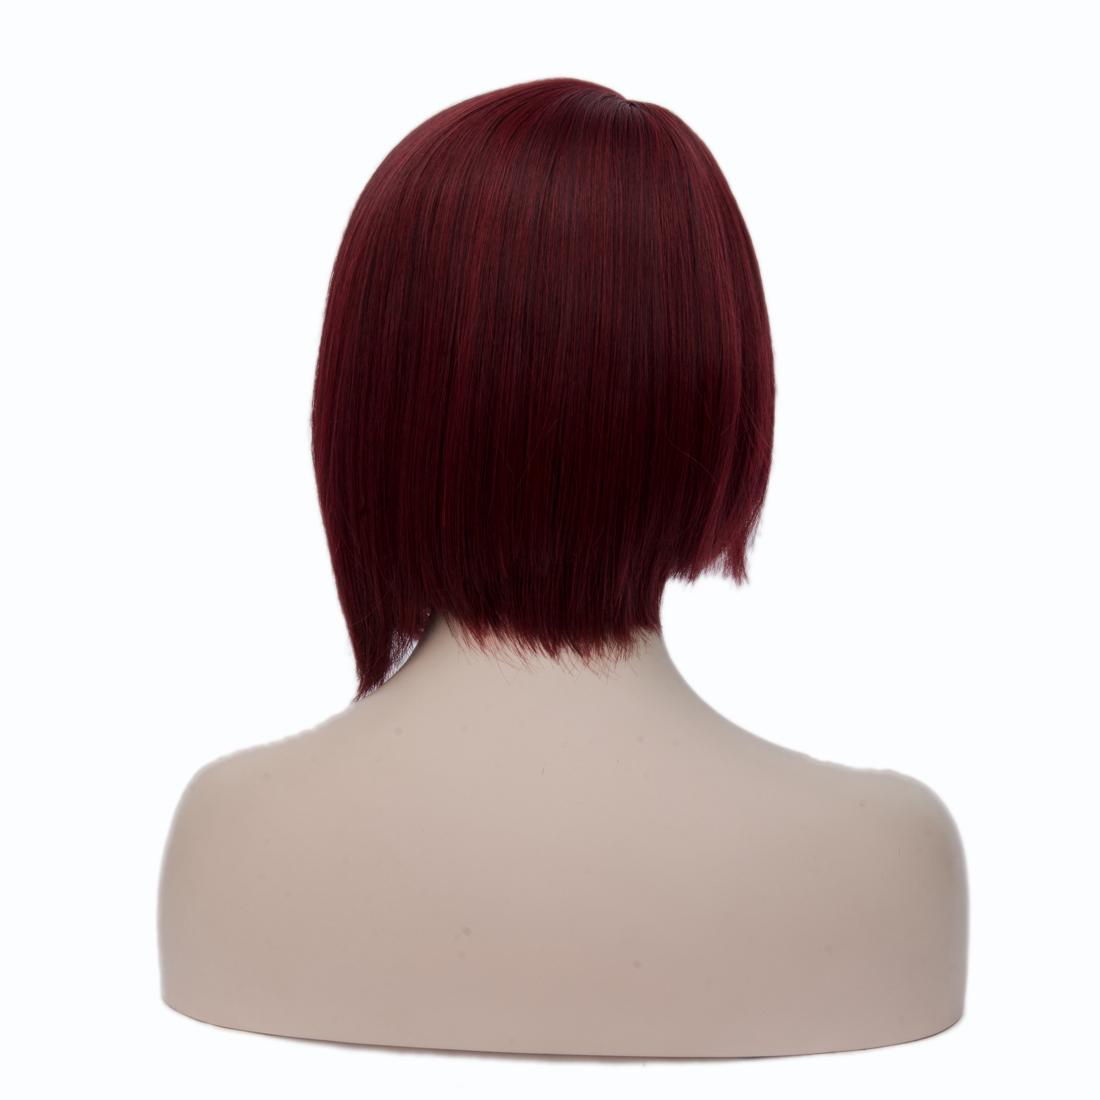 Wine Red Asymmetrical Bob Short Wigs Straight High Temperature Fiber Synthetic Hair For Black Women